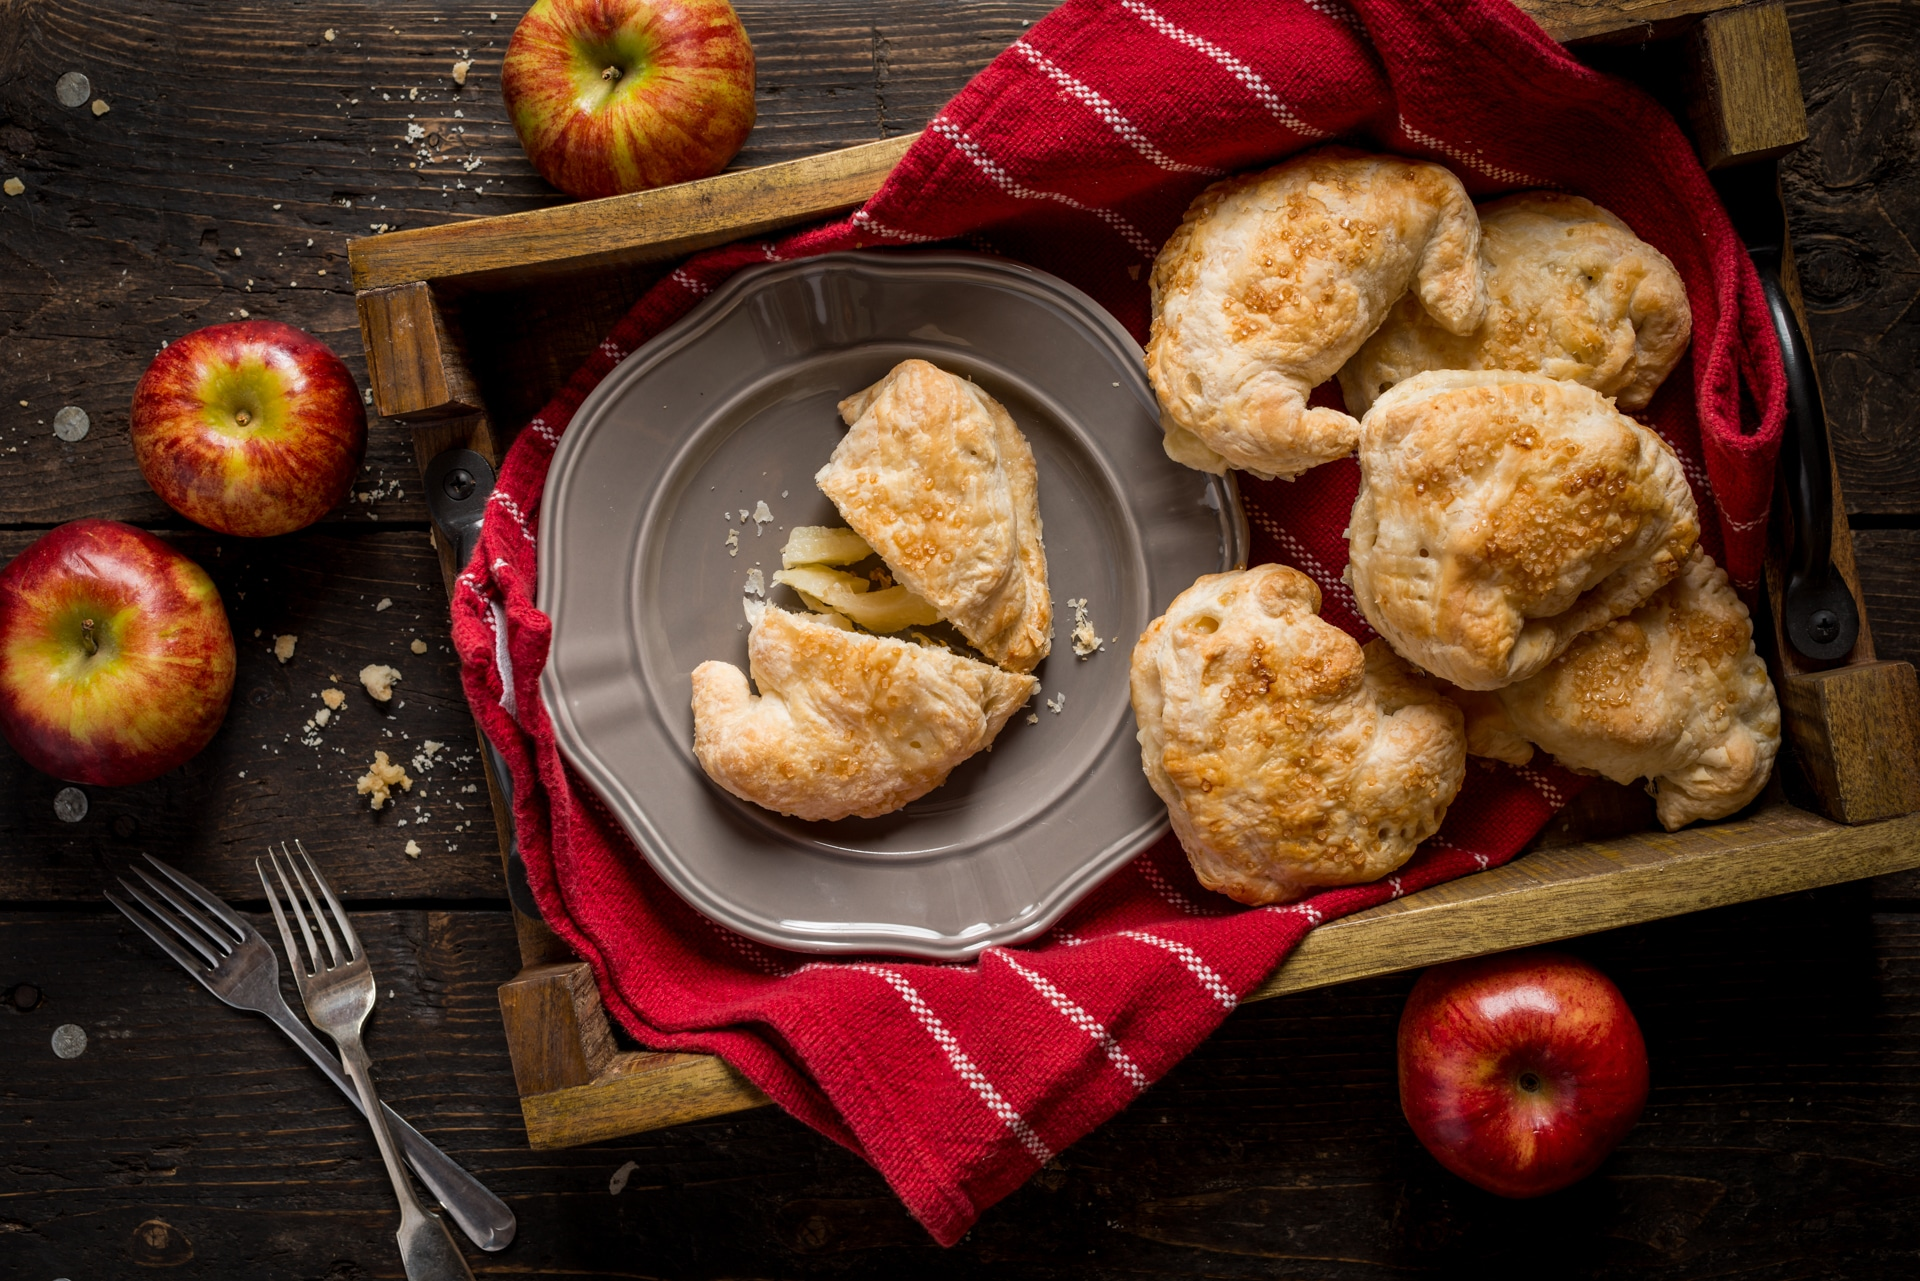 Riverdale Orchard baked apple turnovers